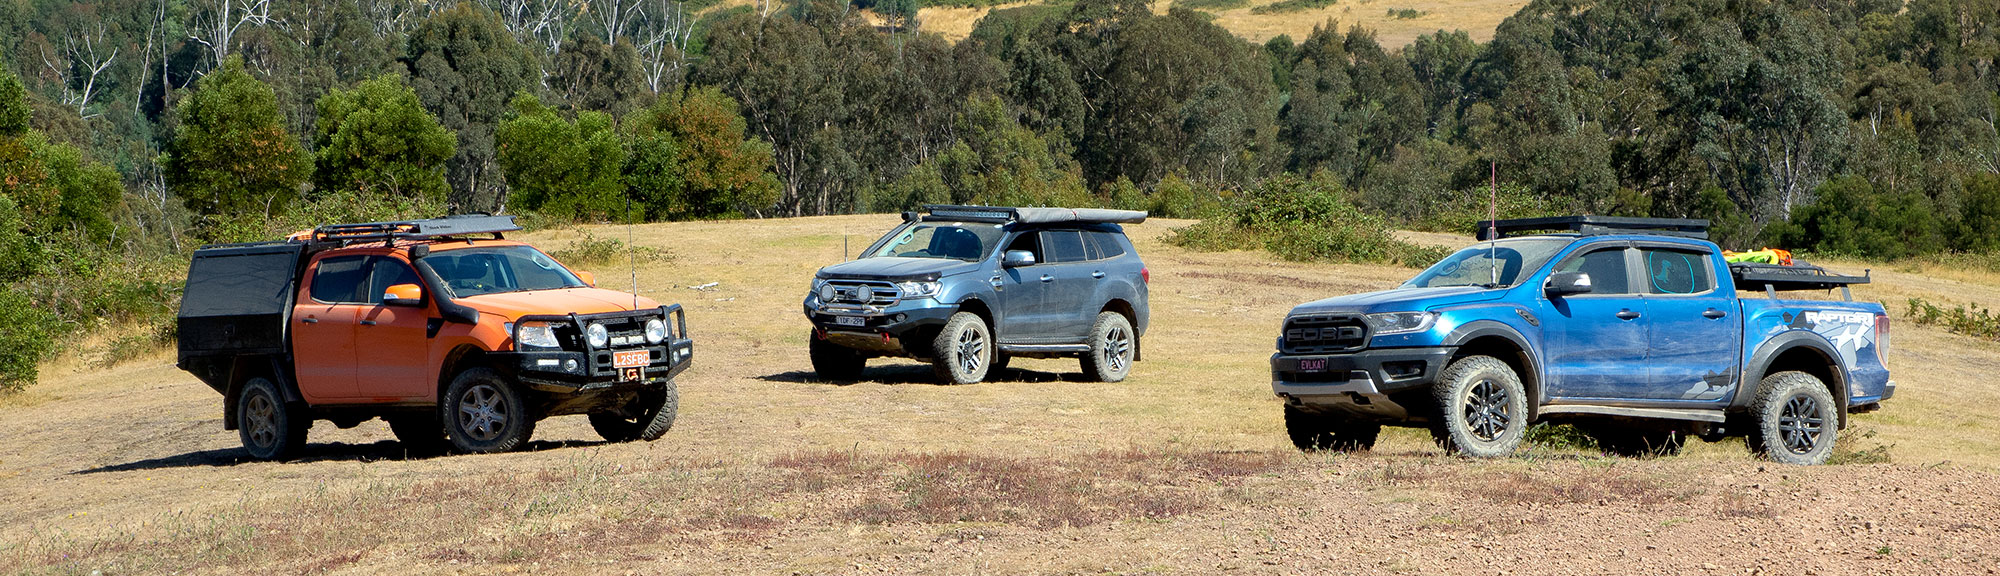 Should I tow with a ute or a wagon, and why?